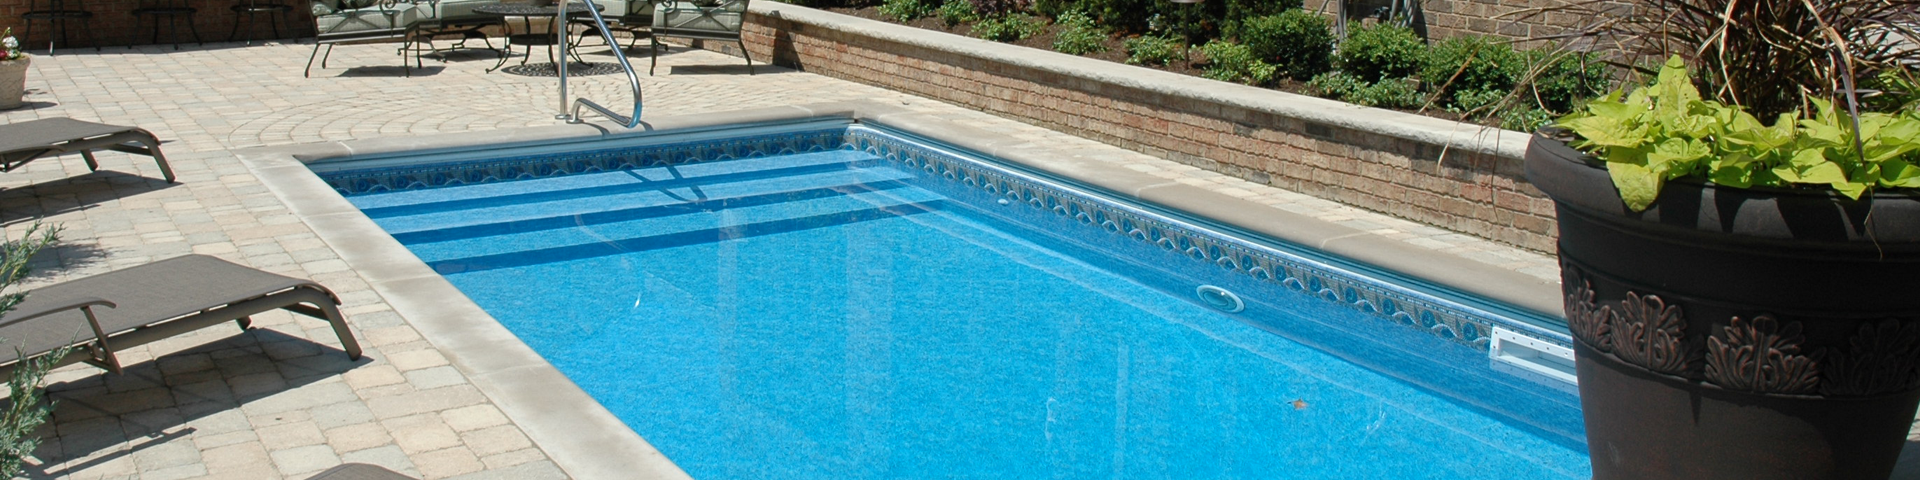 Pro edge pools inground pool installation service and more for Vinyl swimming pool